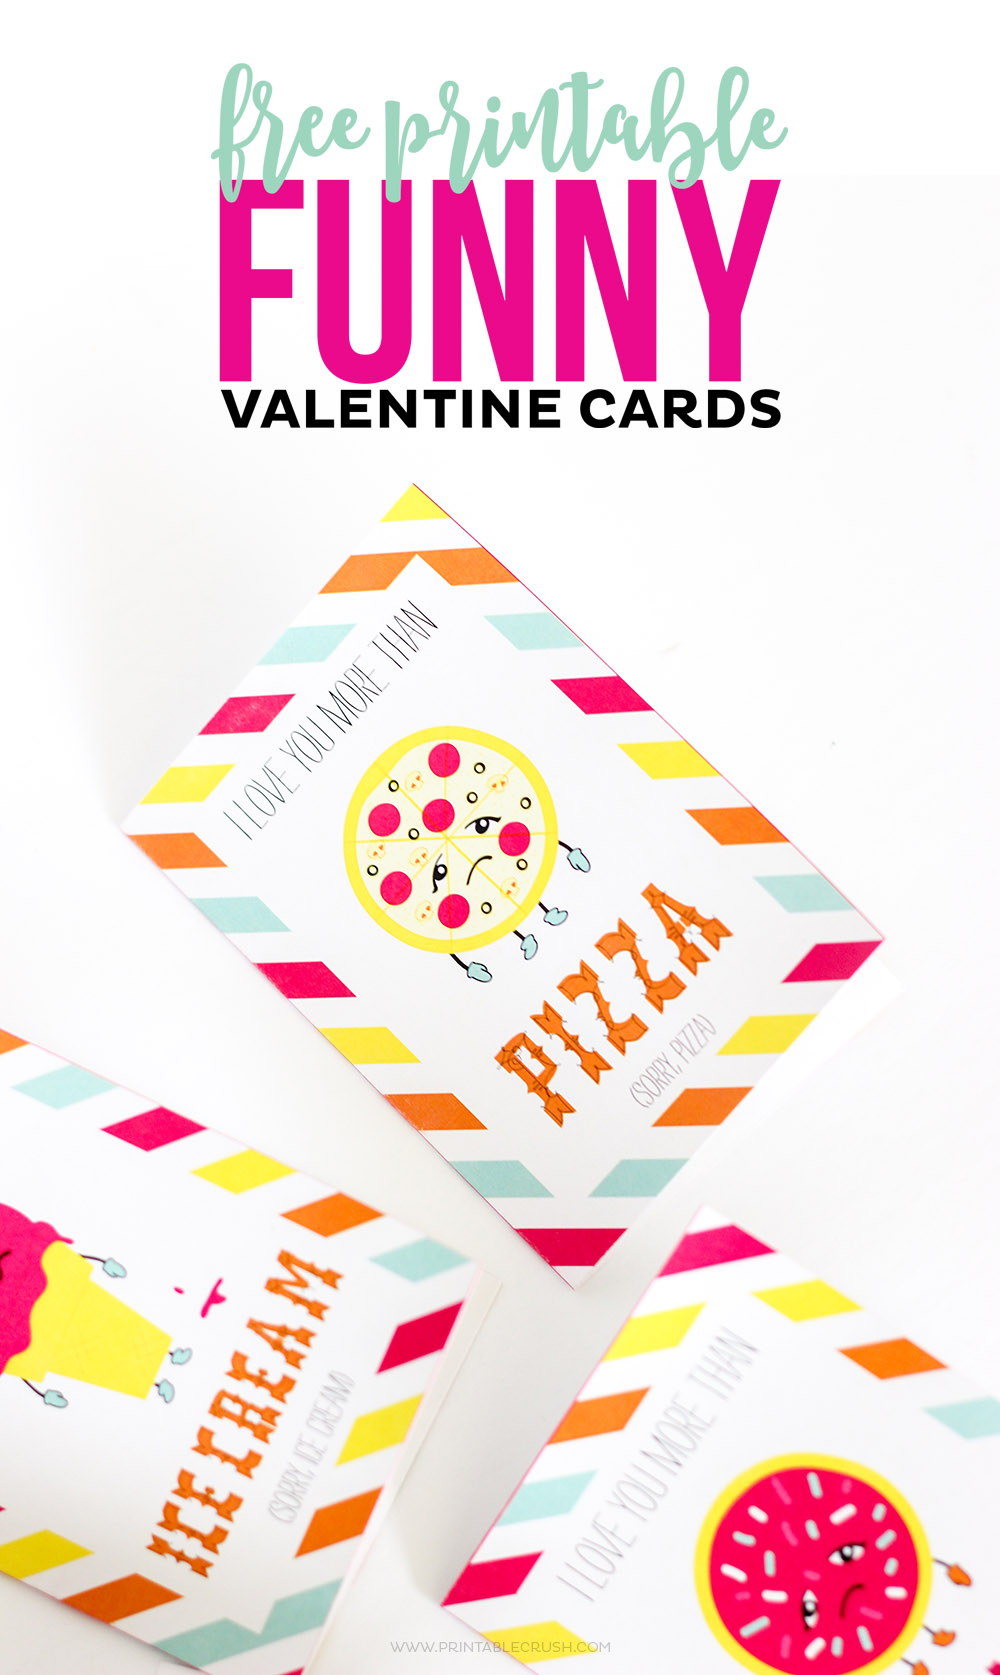 Closeup of pizza funny Valentine card